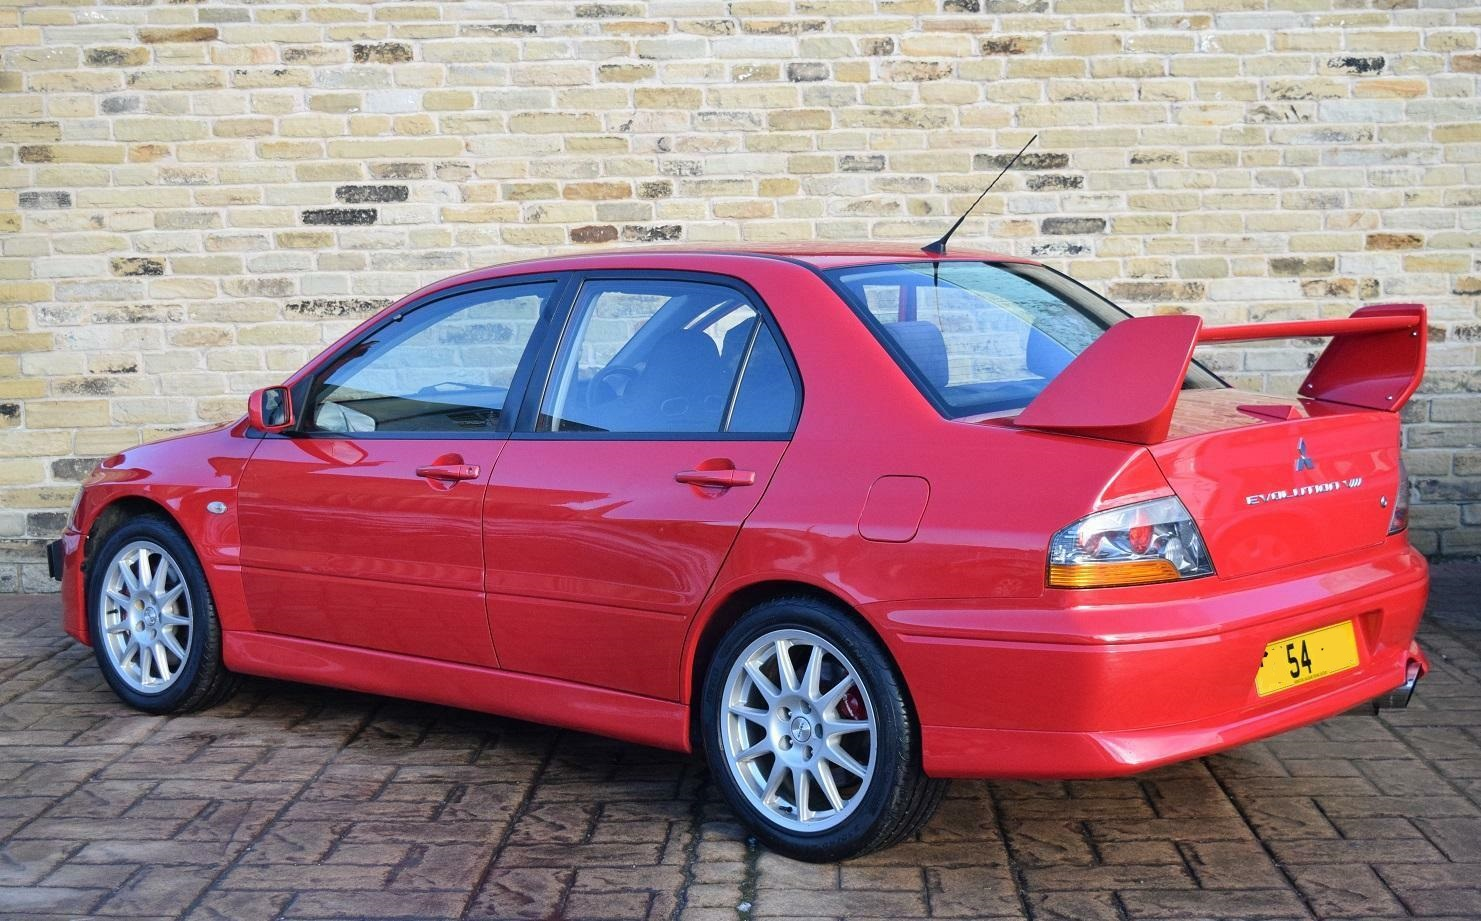 2004 Mitsubishi Lancer Evolution 8 2 Owners + F/S/H For Sale (picture 4 of 6)